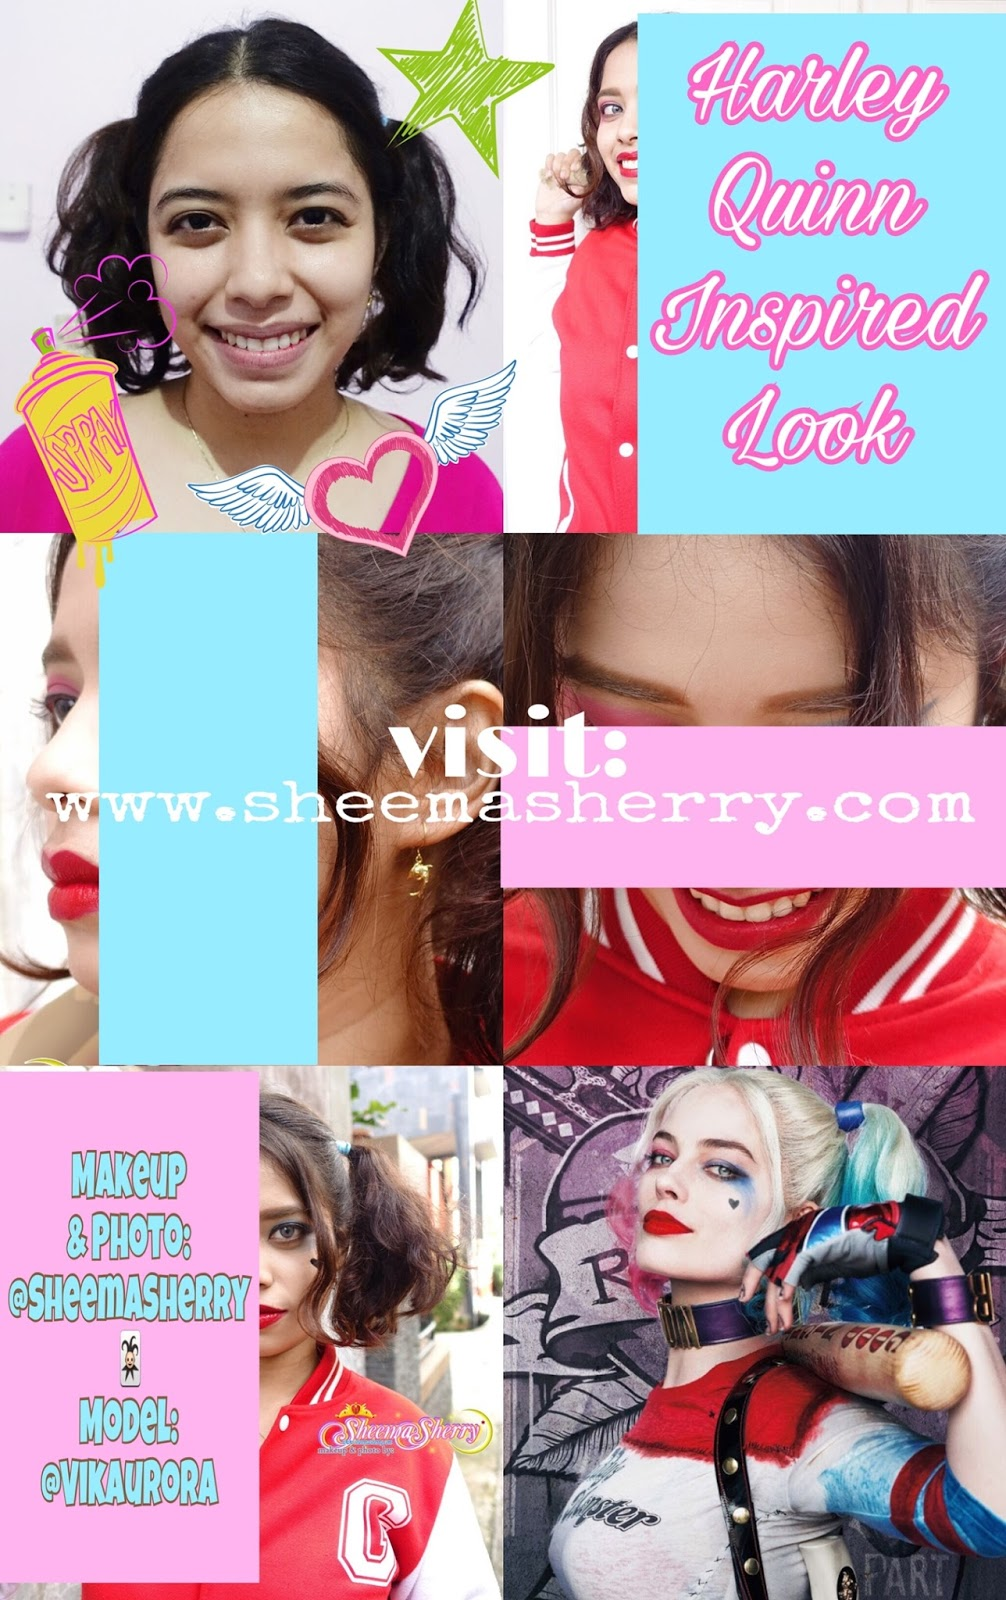 INSPIRED LOOK HARLEY QUINN from SUICIDE SQUAD Makeover Play cosplay margot robbie low budget cosplay DC Comics Joker Sheema Sherry Kawaii Hijabi